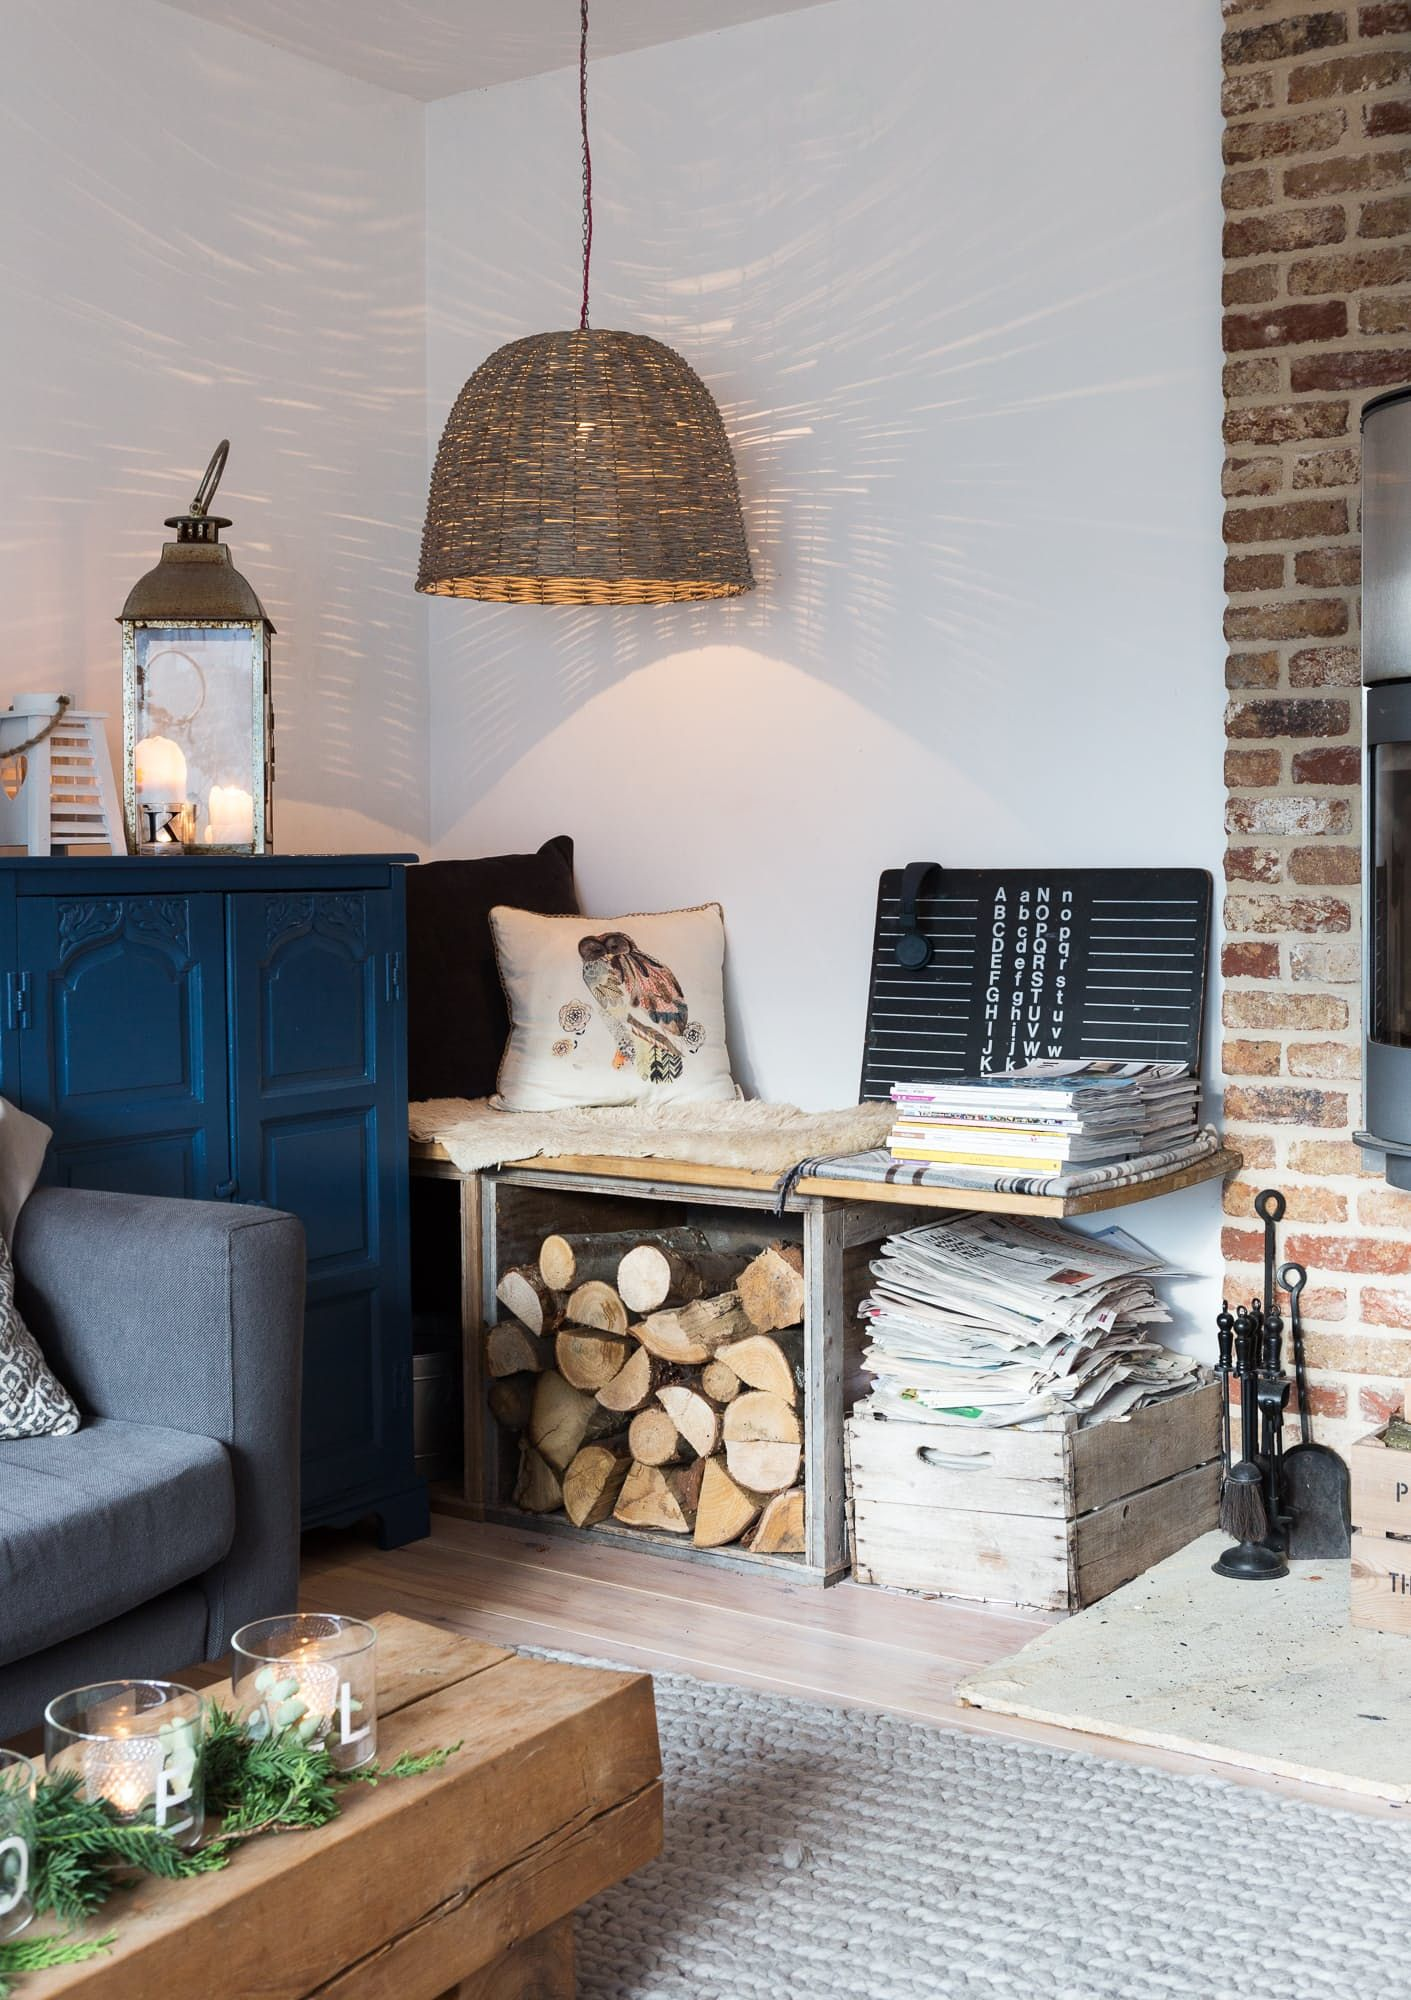 Cozy Christmas Decor In A Rustic Modern English Home